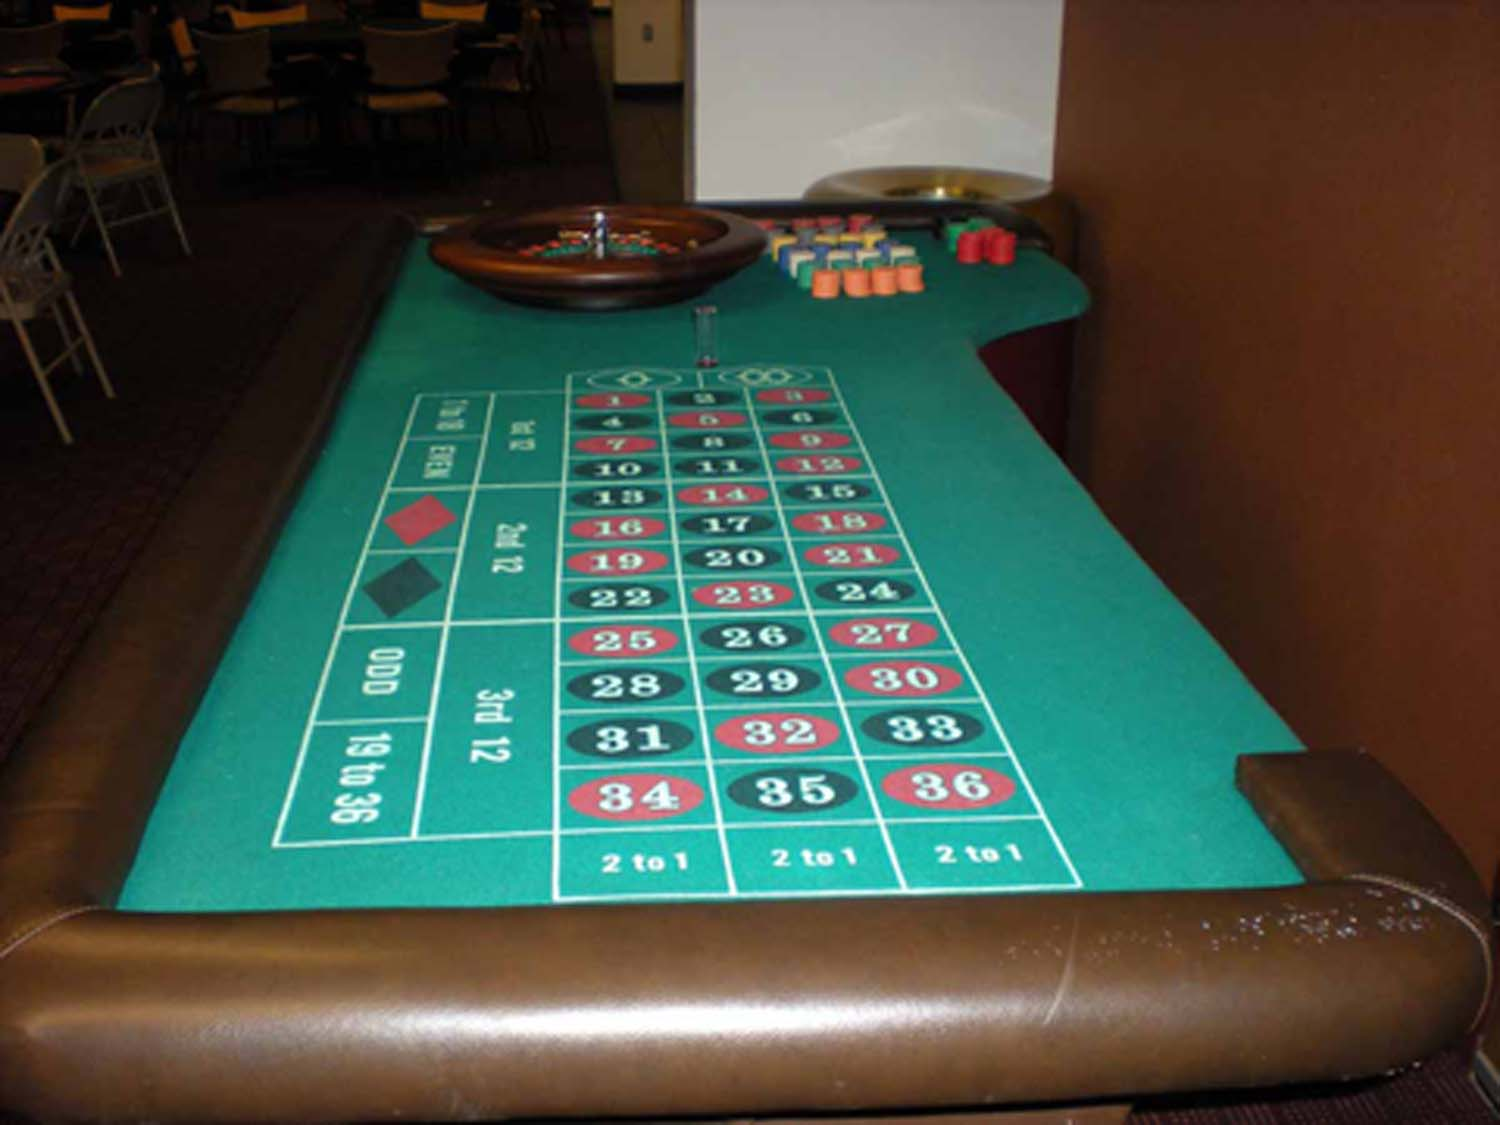 arizona casino knights casino night roulette tables. Black Bedroom Furniture Sets. Home Design Ideas